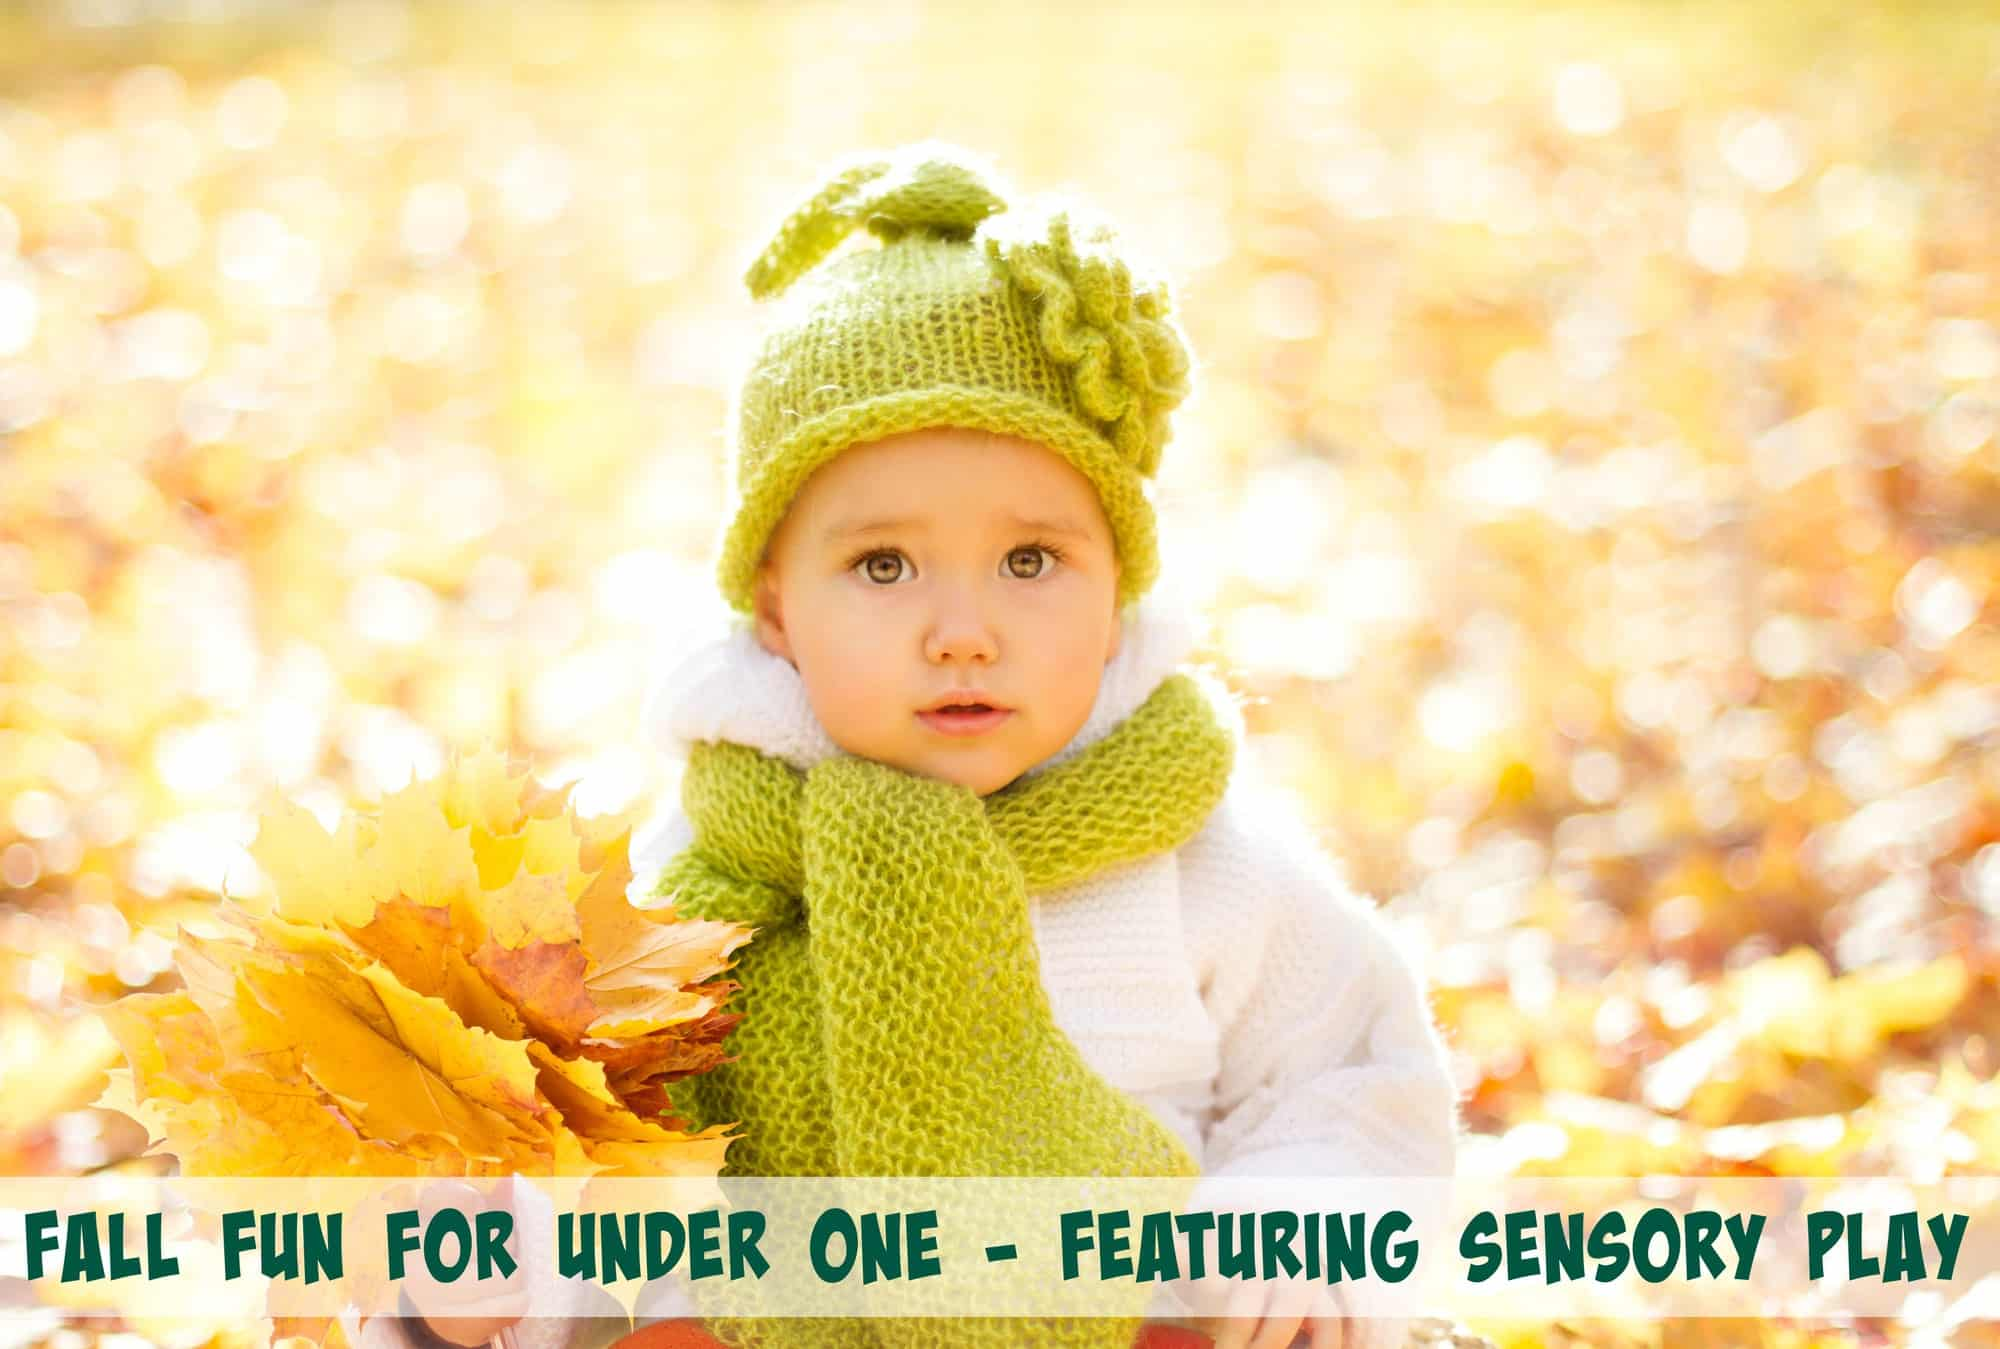 Fall Fun for Under One – Featuring Sensory Play